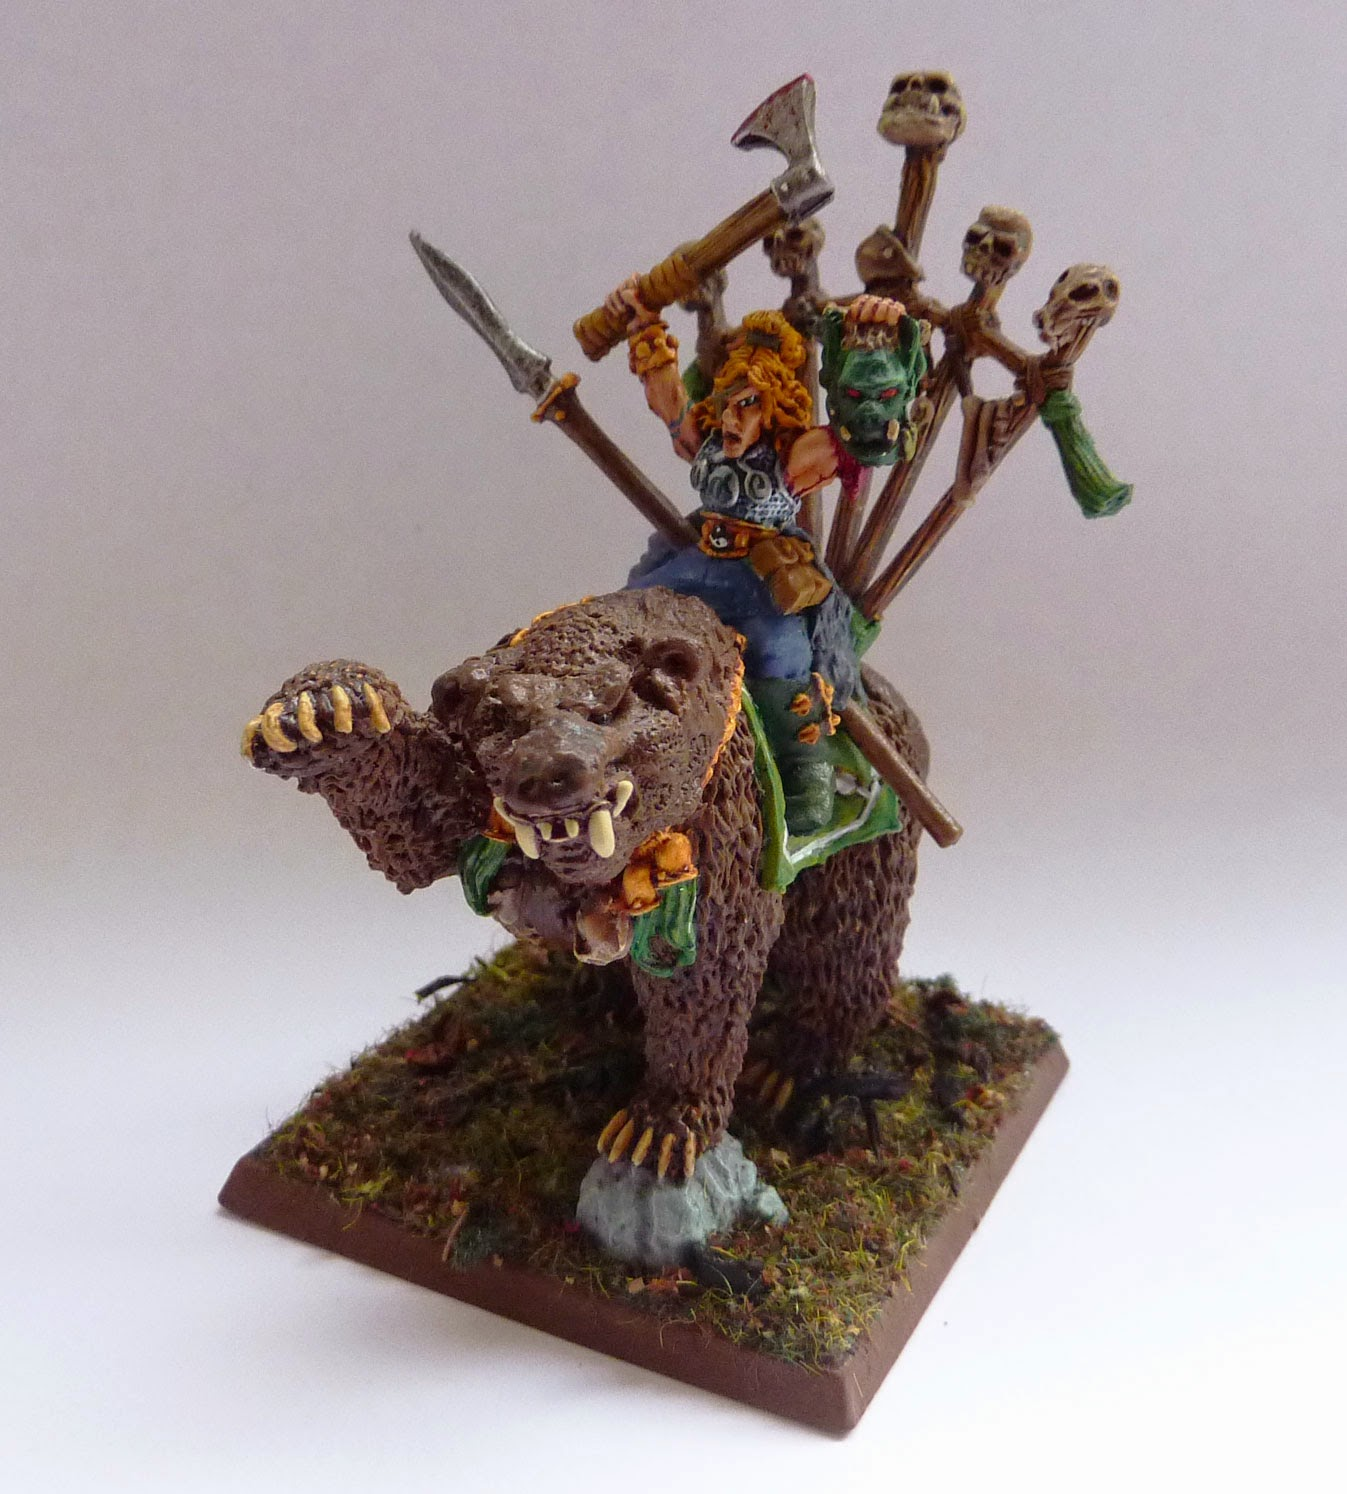 Wood Elf Great Stag conversion, using Tsar Boris of Kislev's Bear